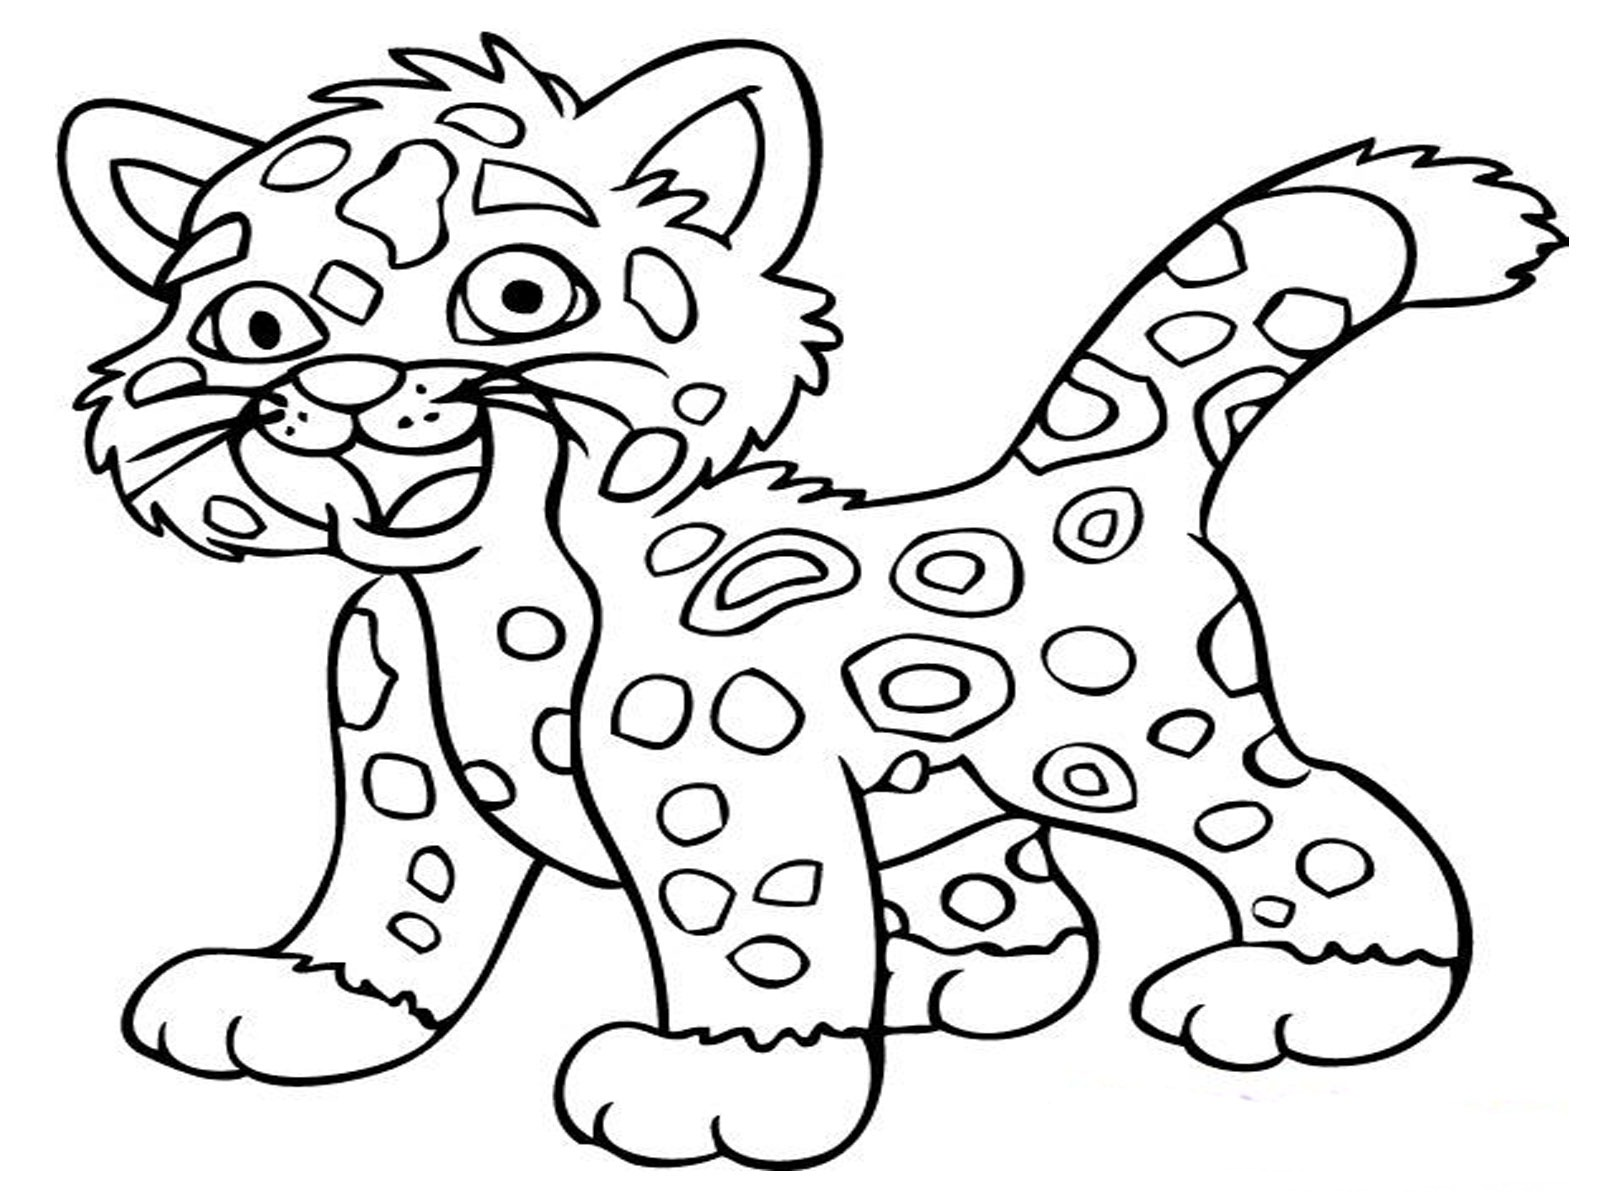 Printable coloring pages only coloring pages for Coloring pages